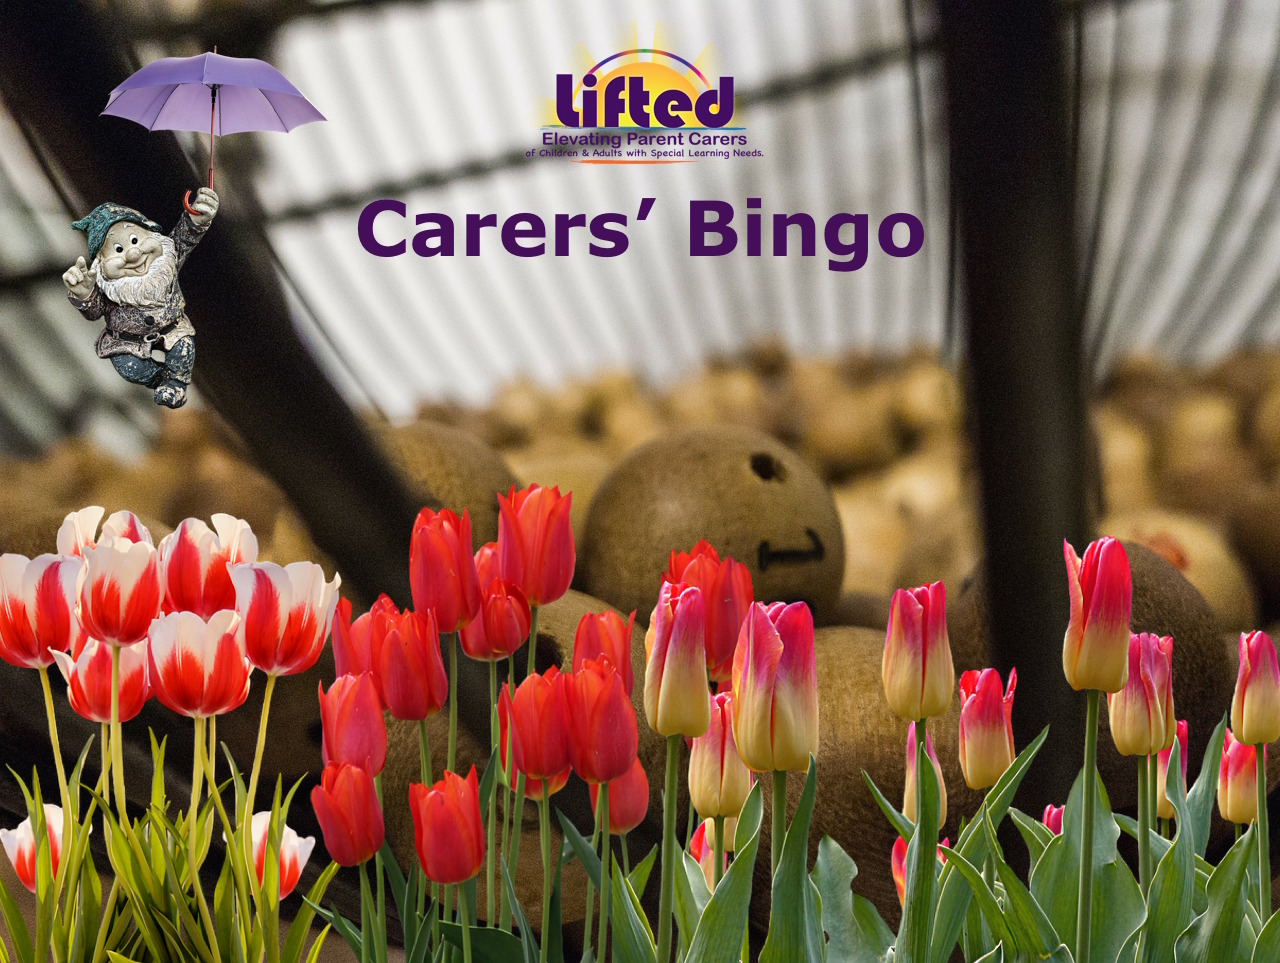 Teaser image for Lifted Carers' Spring Bingo 2018 | original images from pixabay.com